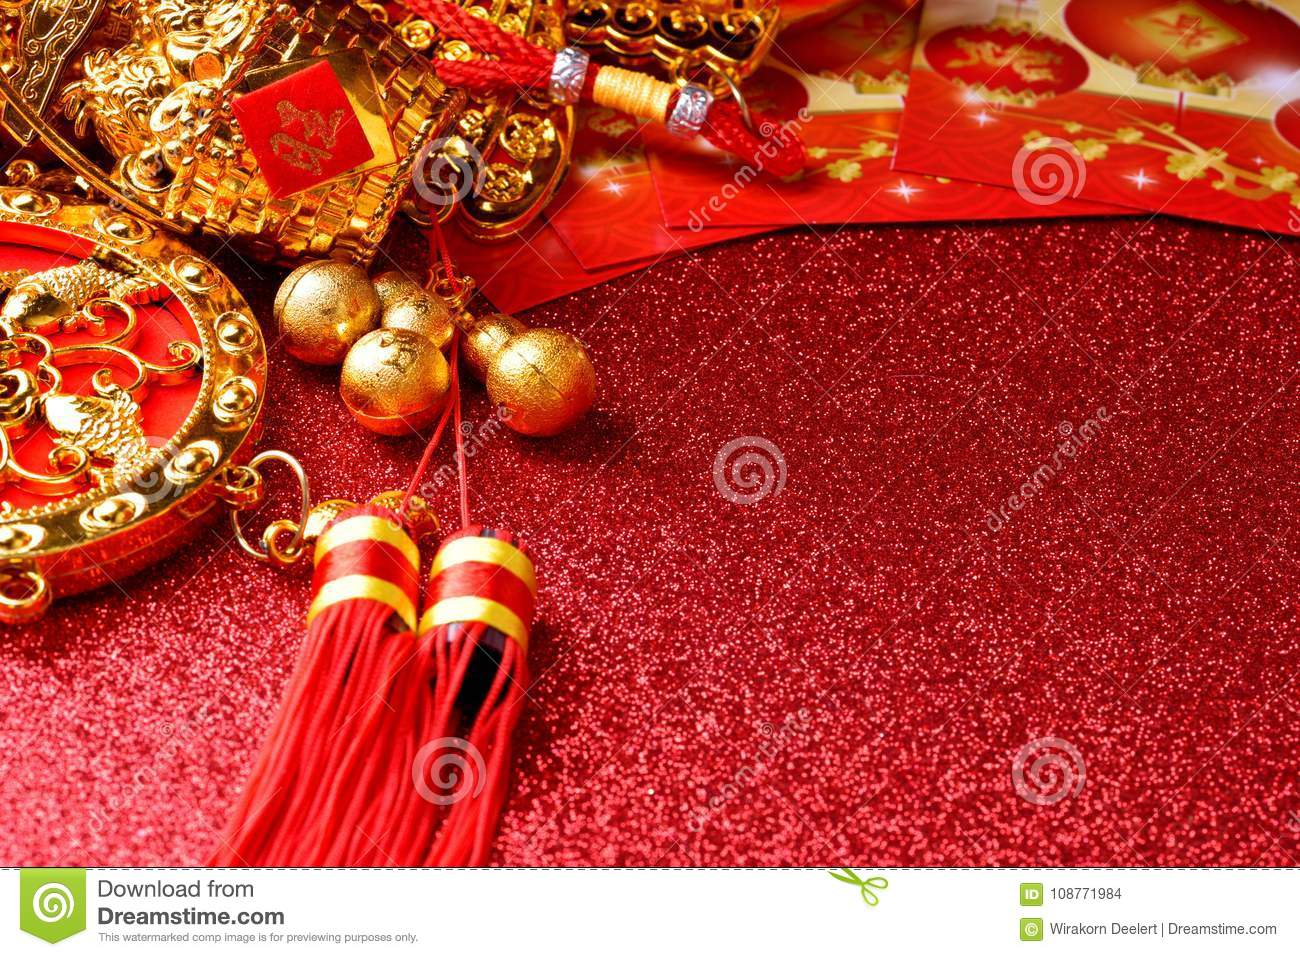 chinese new year decorations and auspicious ornaments on red bokeh background